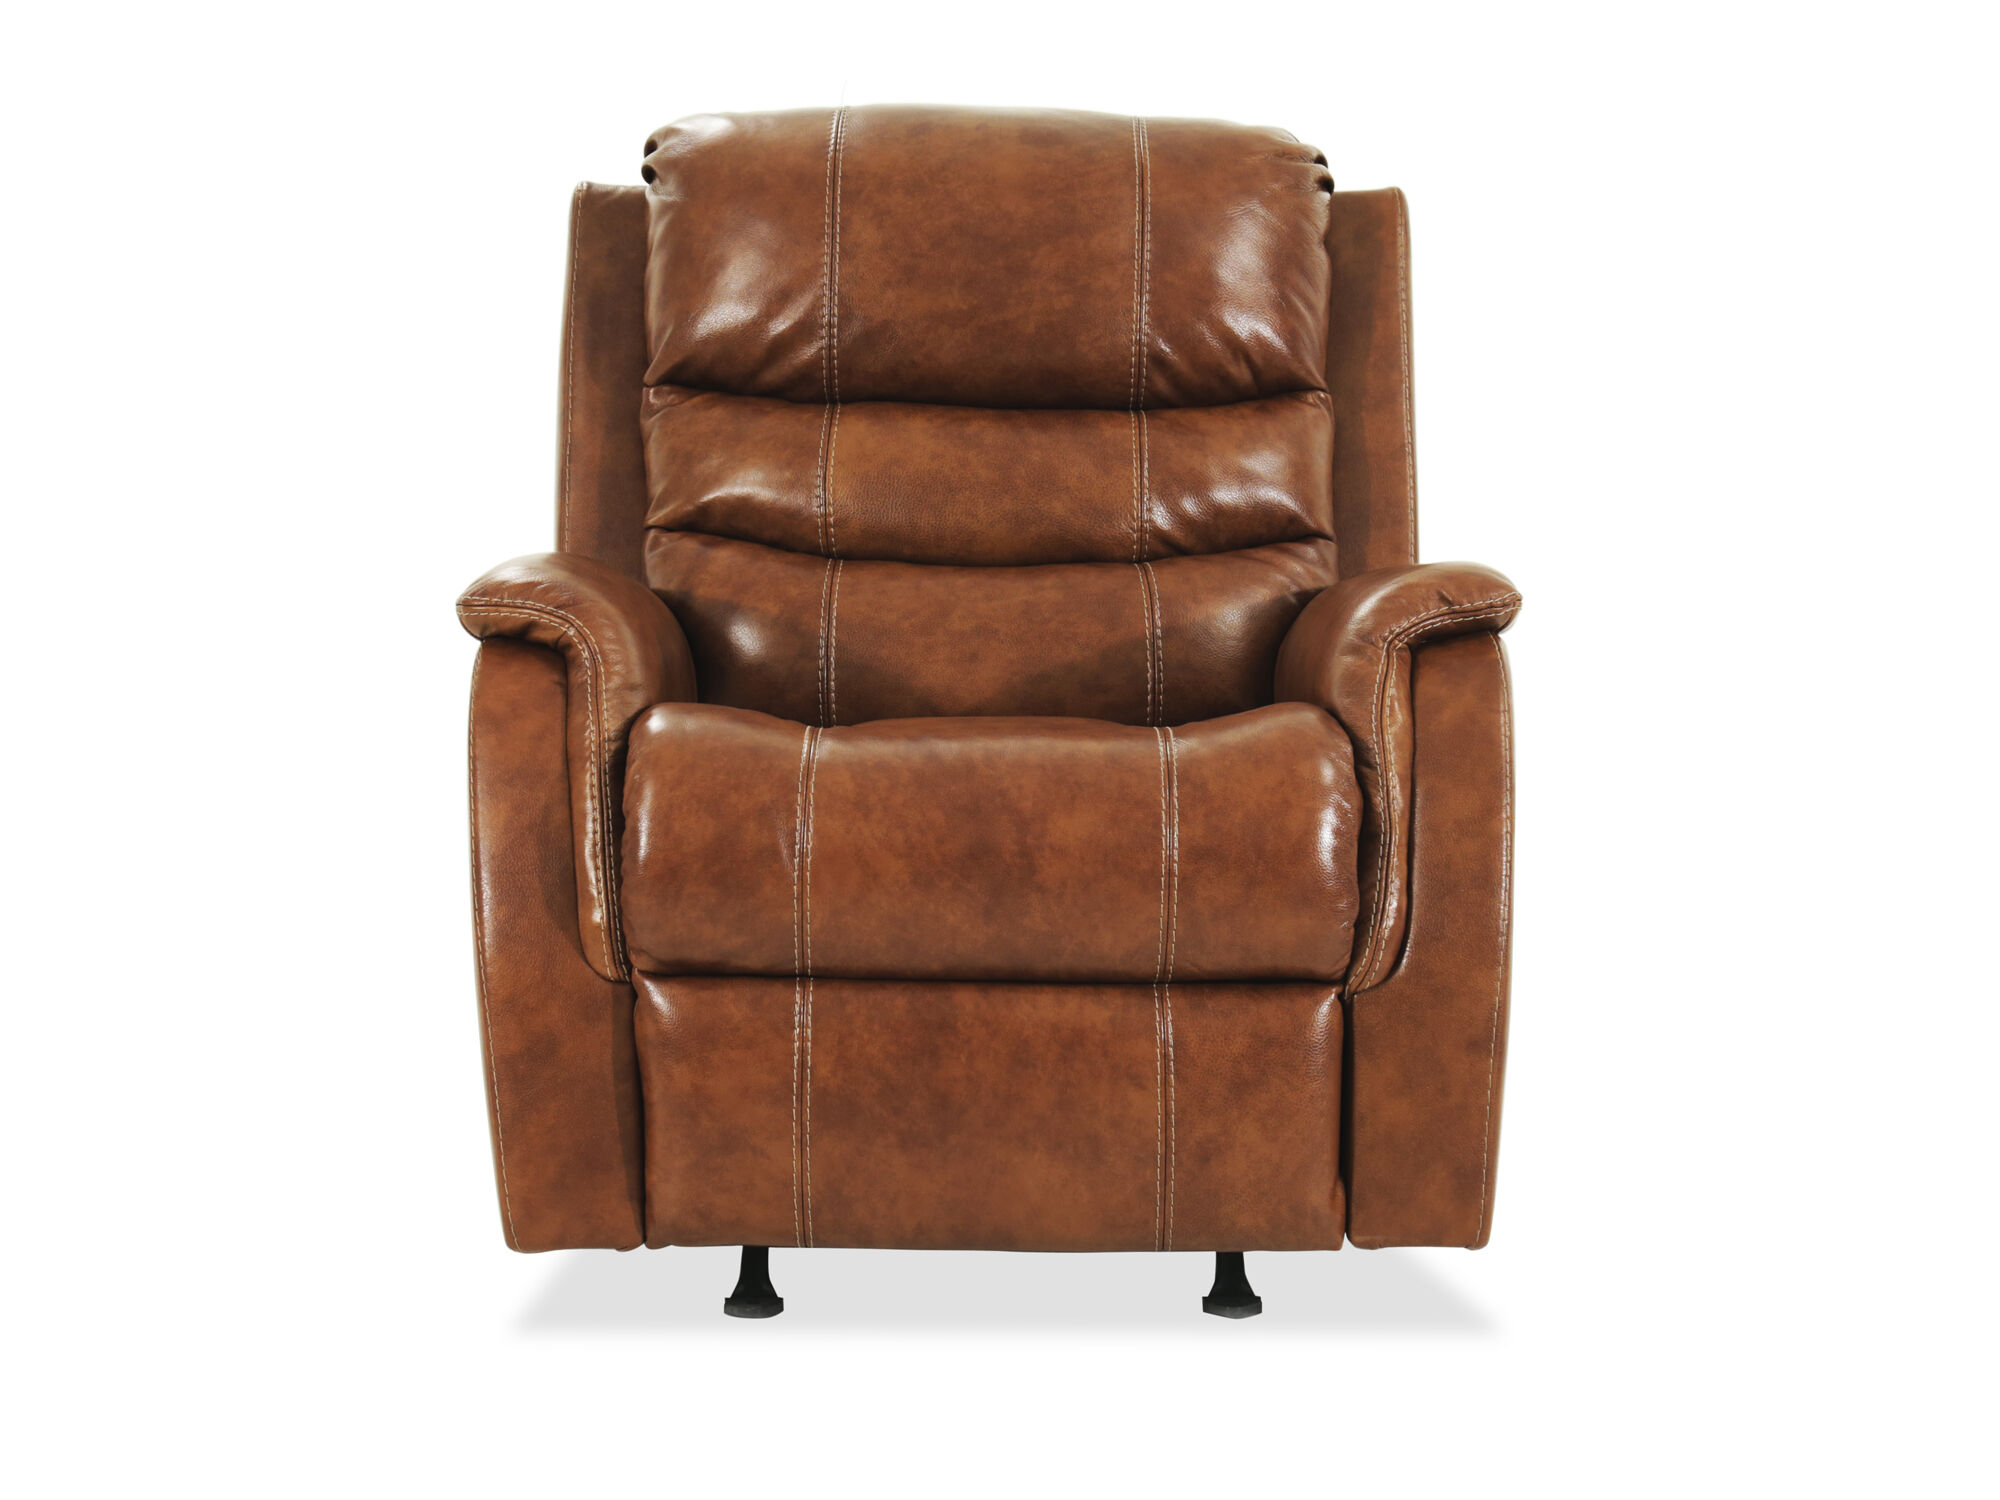 Ashley Metcalf Nutmeg Power Recliner with Adjustable Headrest ...  sc 1 st  Mathis Brothers & Recliners - Reclining Chairs u0026 Sofas | Mathis Brothers islam-shia.org